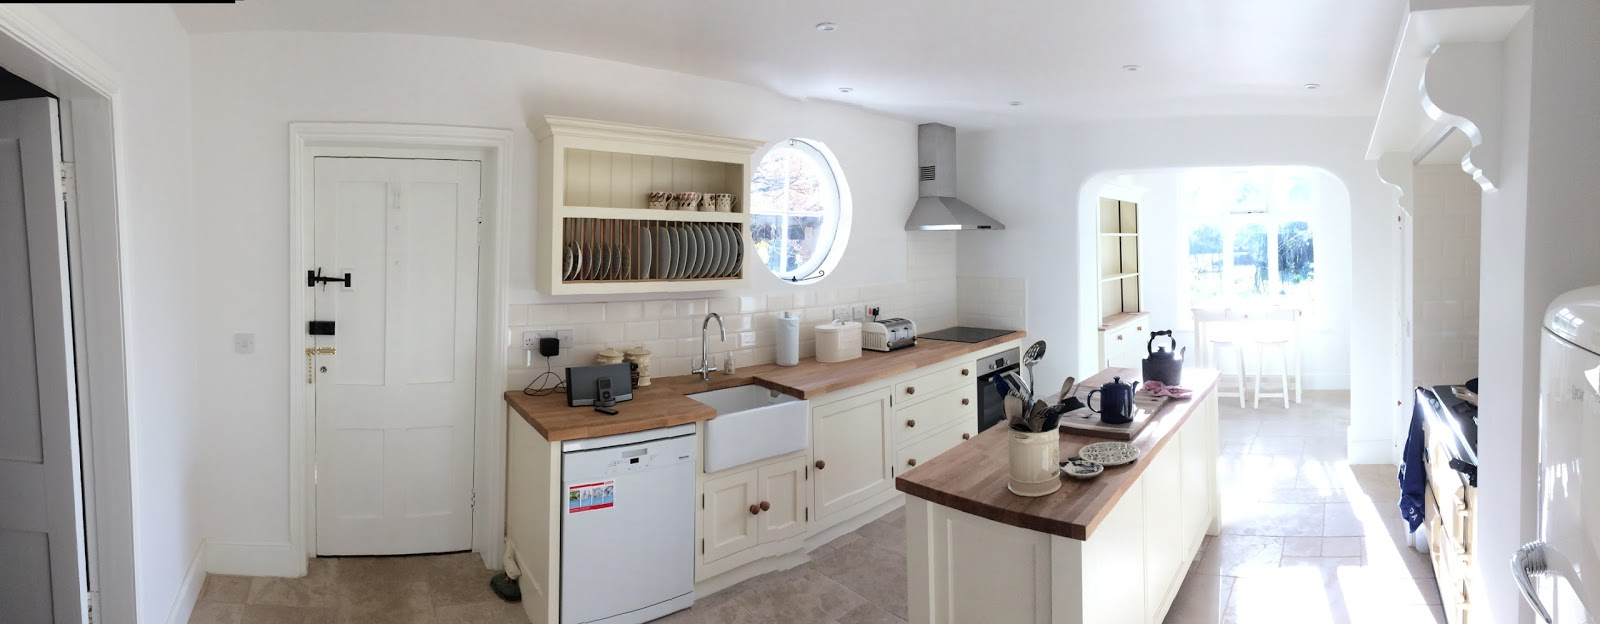 Mike Paton Carpentry: Kitchen Gallery